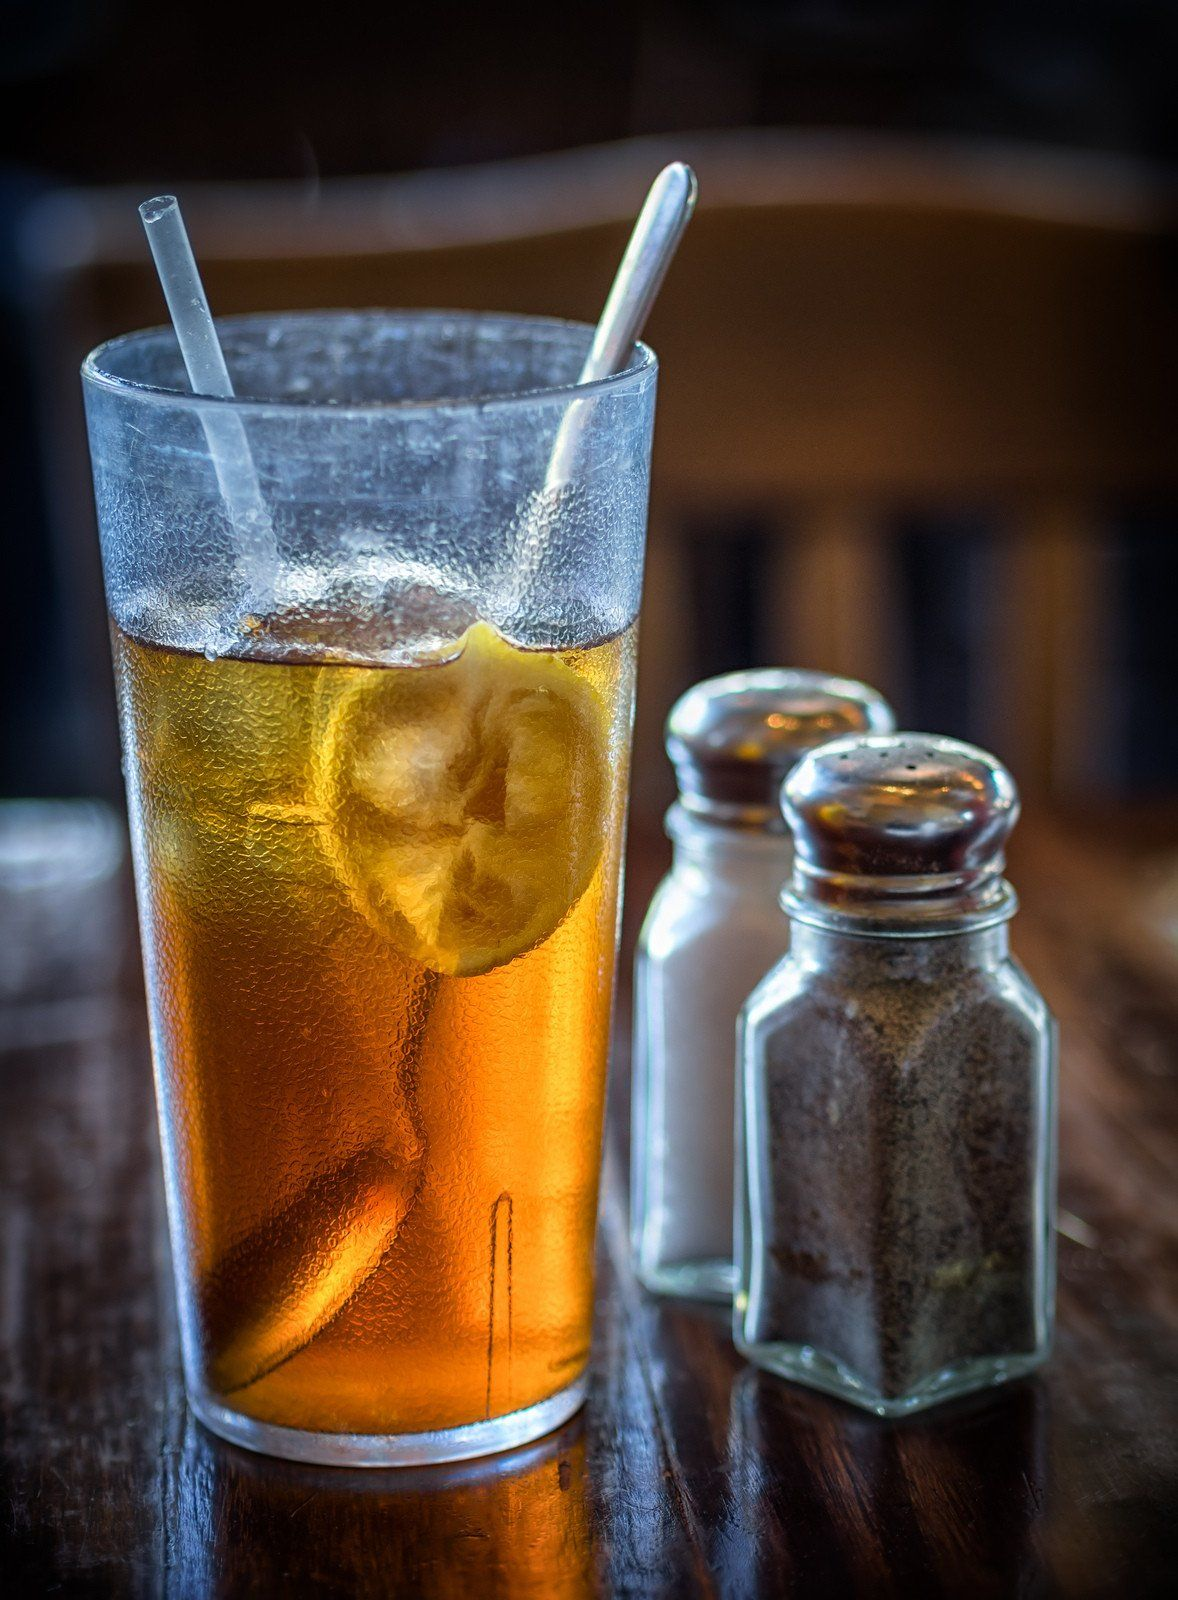 The Best Way To Make Gallons Of Iced Tea Iced Tea Summer Drinks